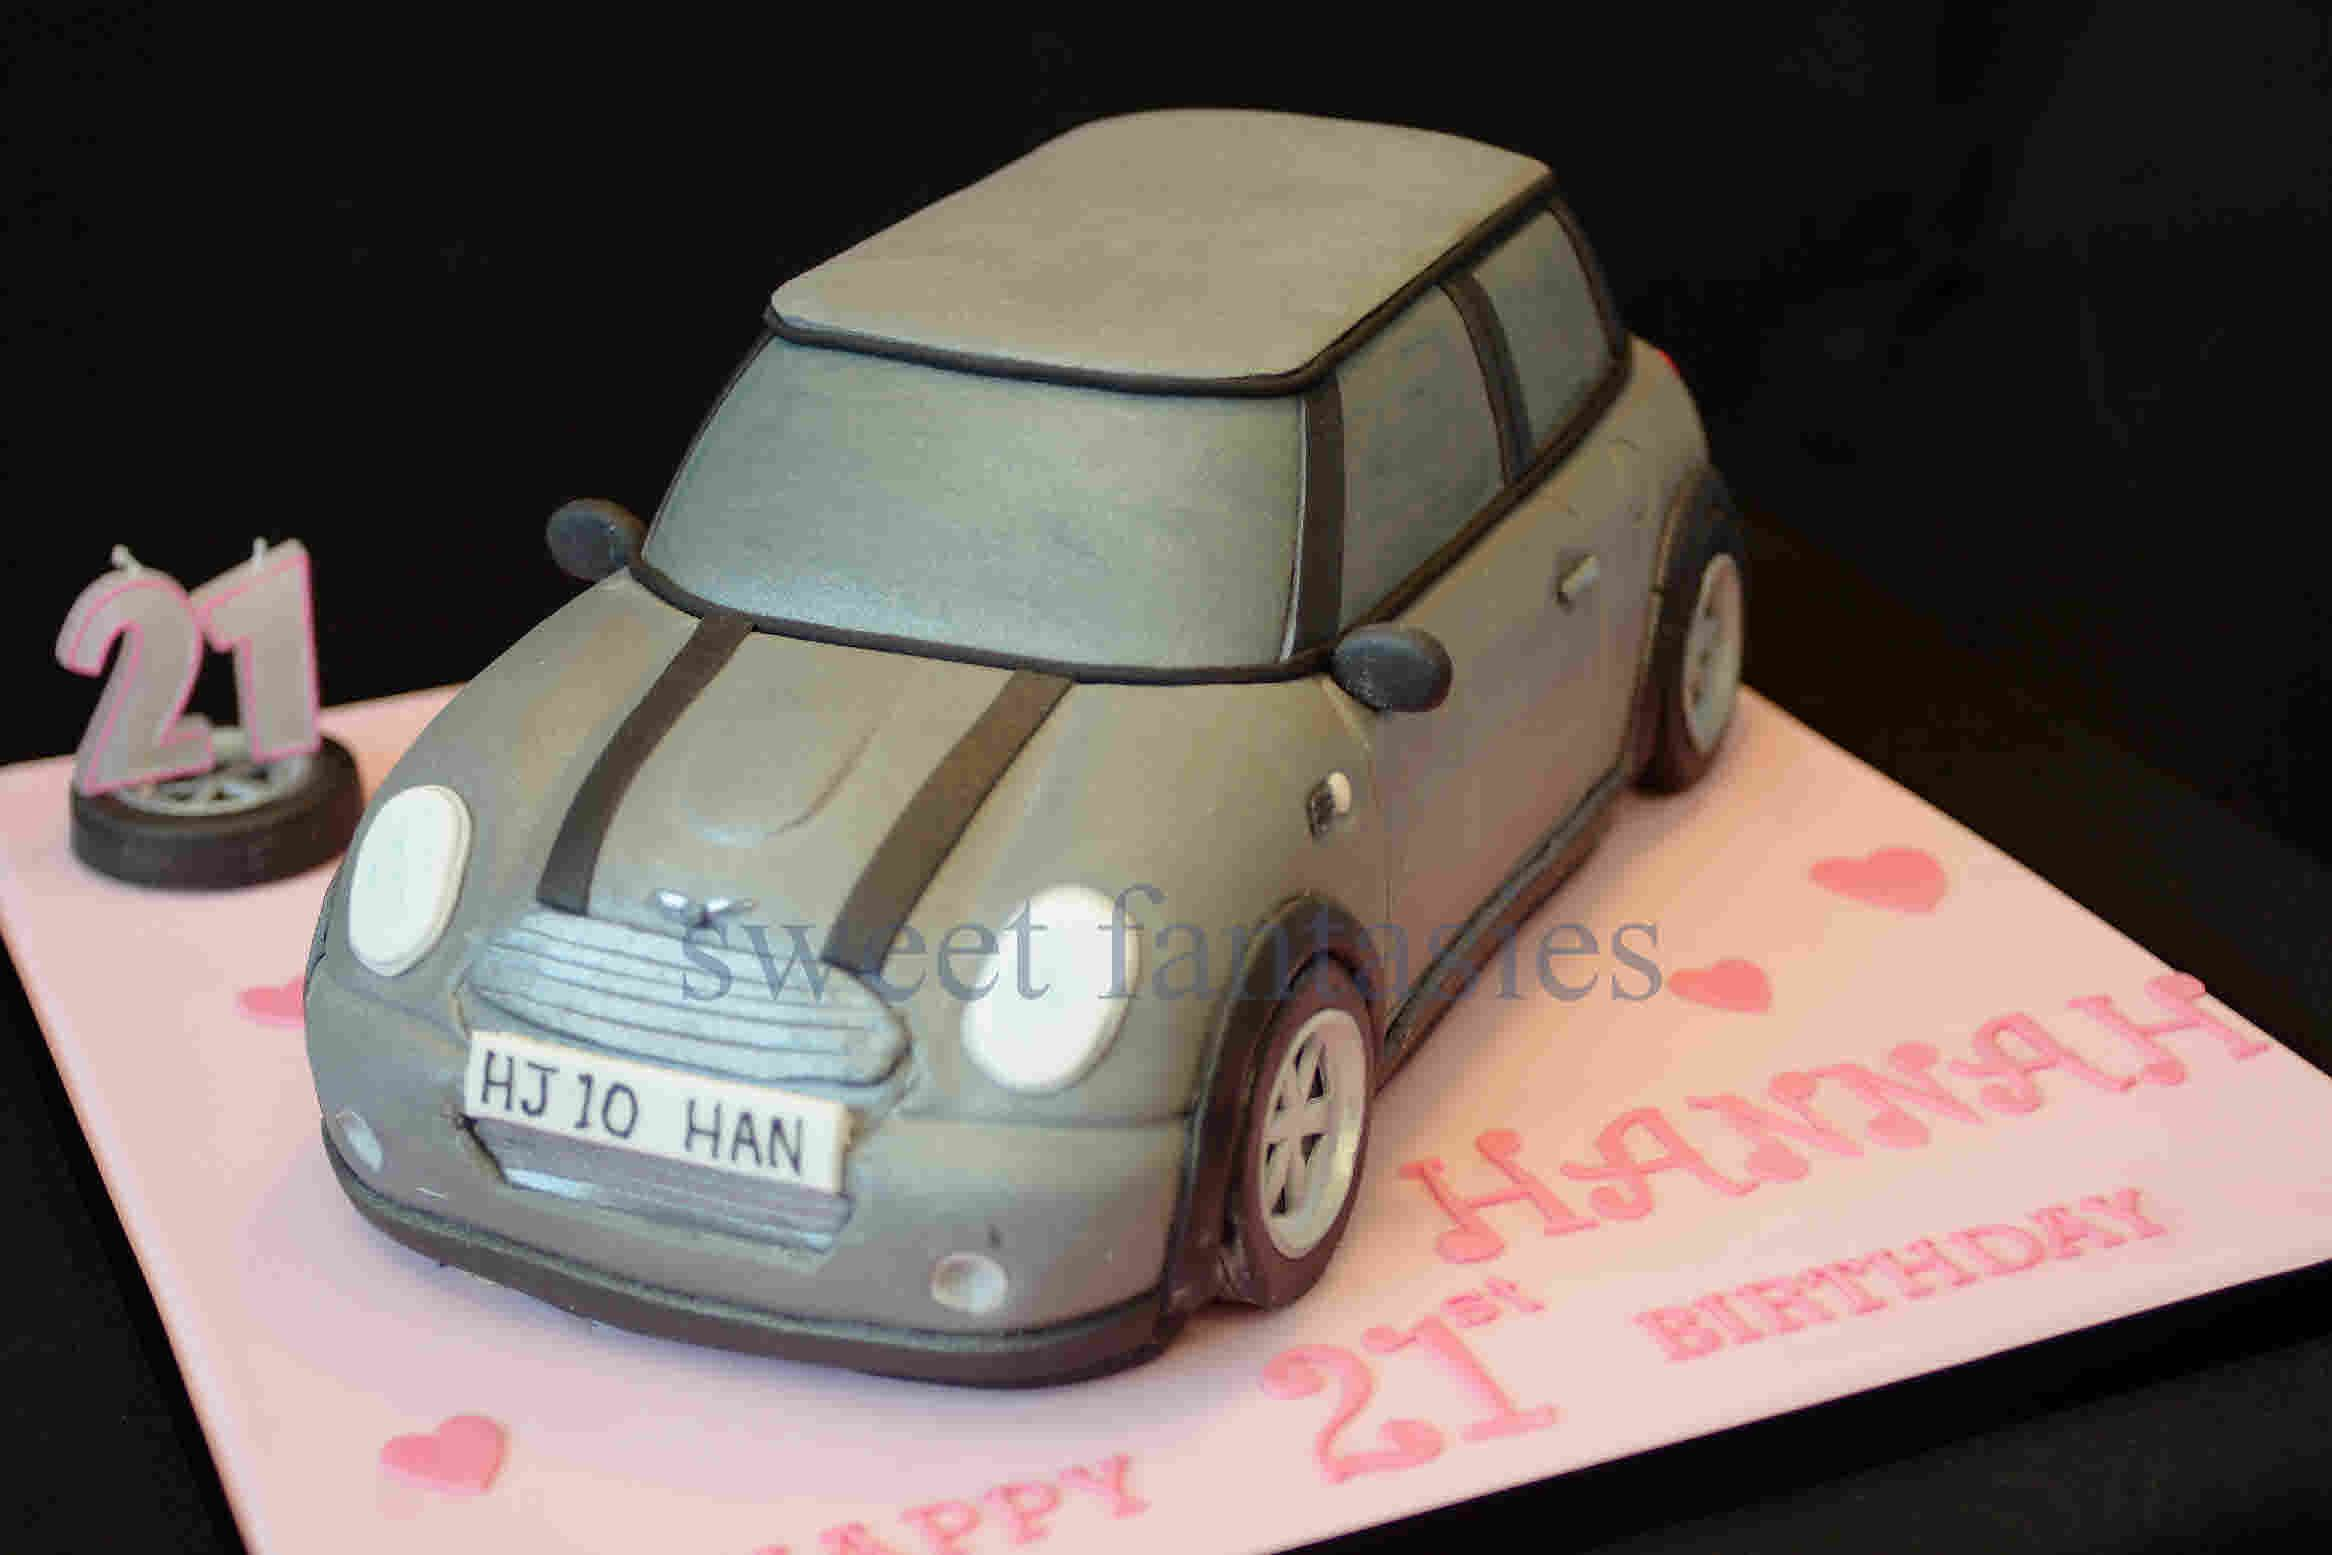 18th birthday cakes Male Female 18th birthday cake by sweet